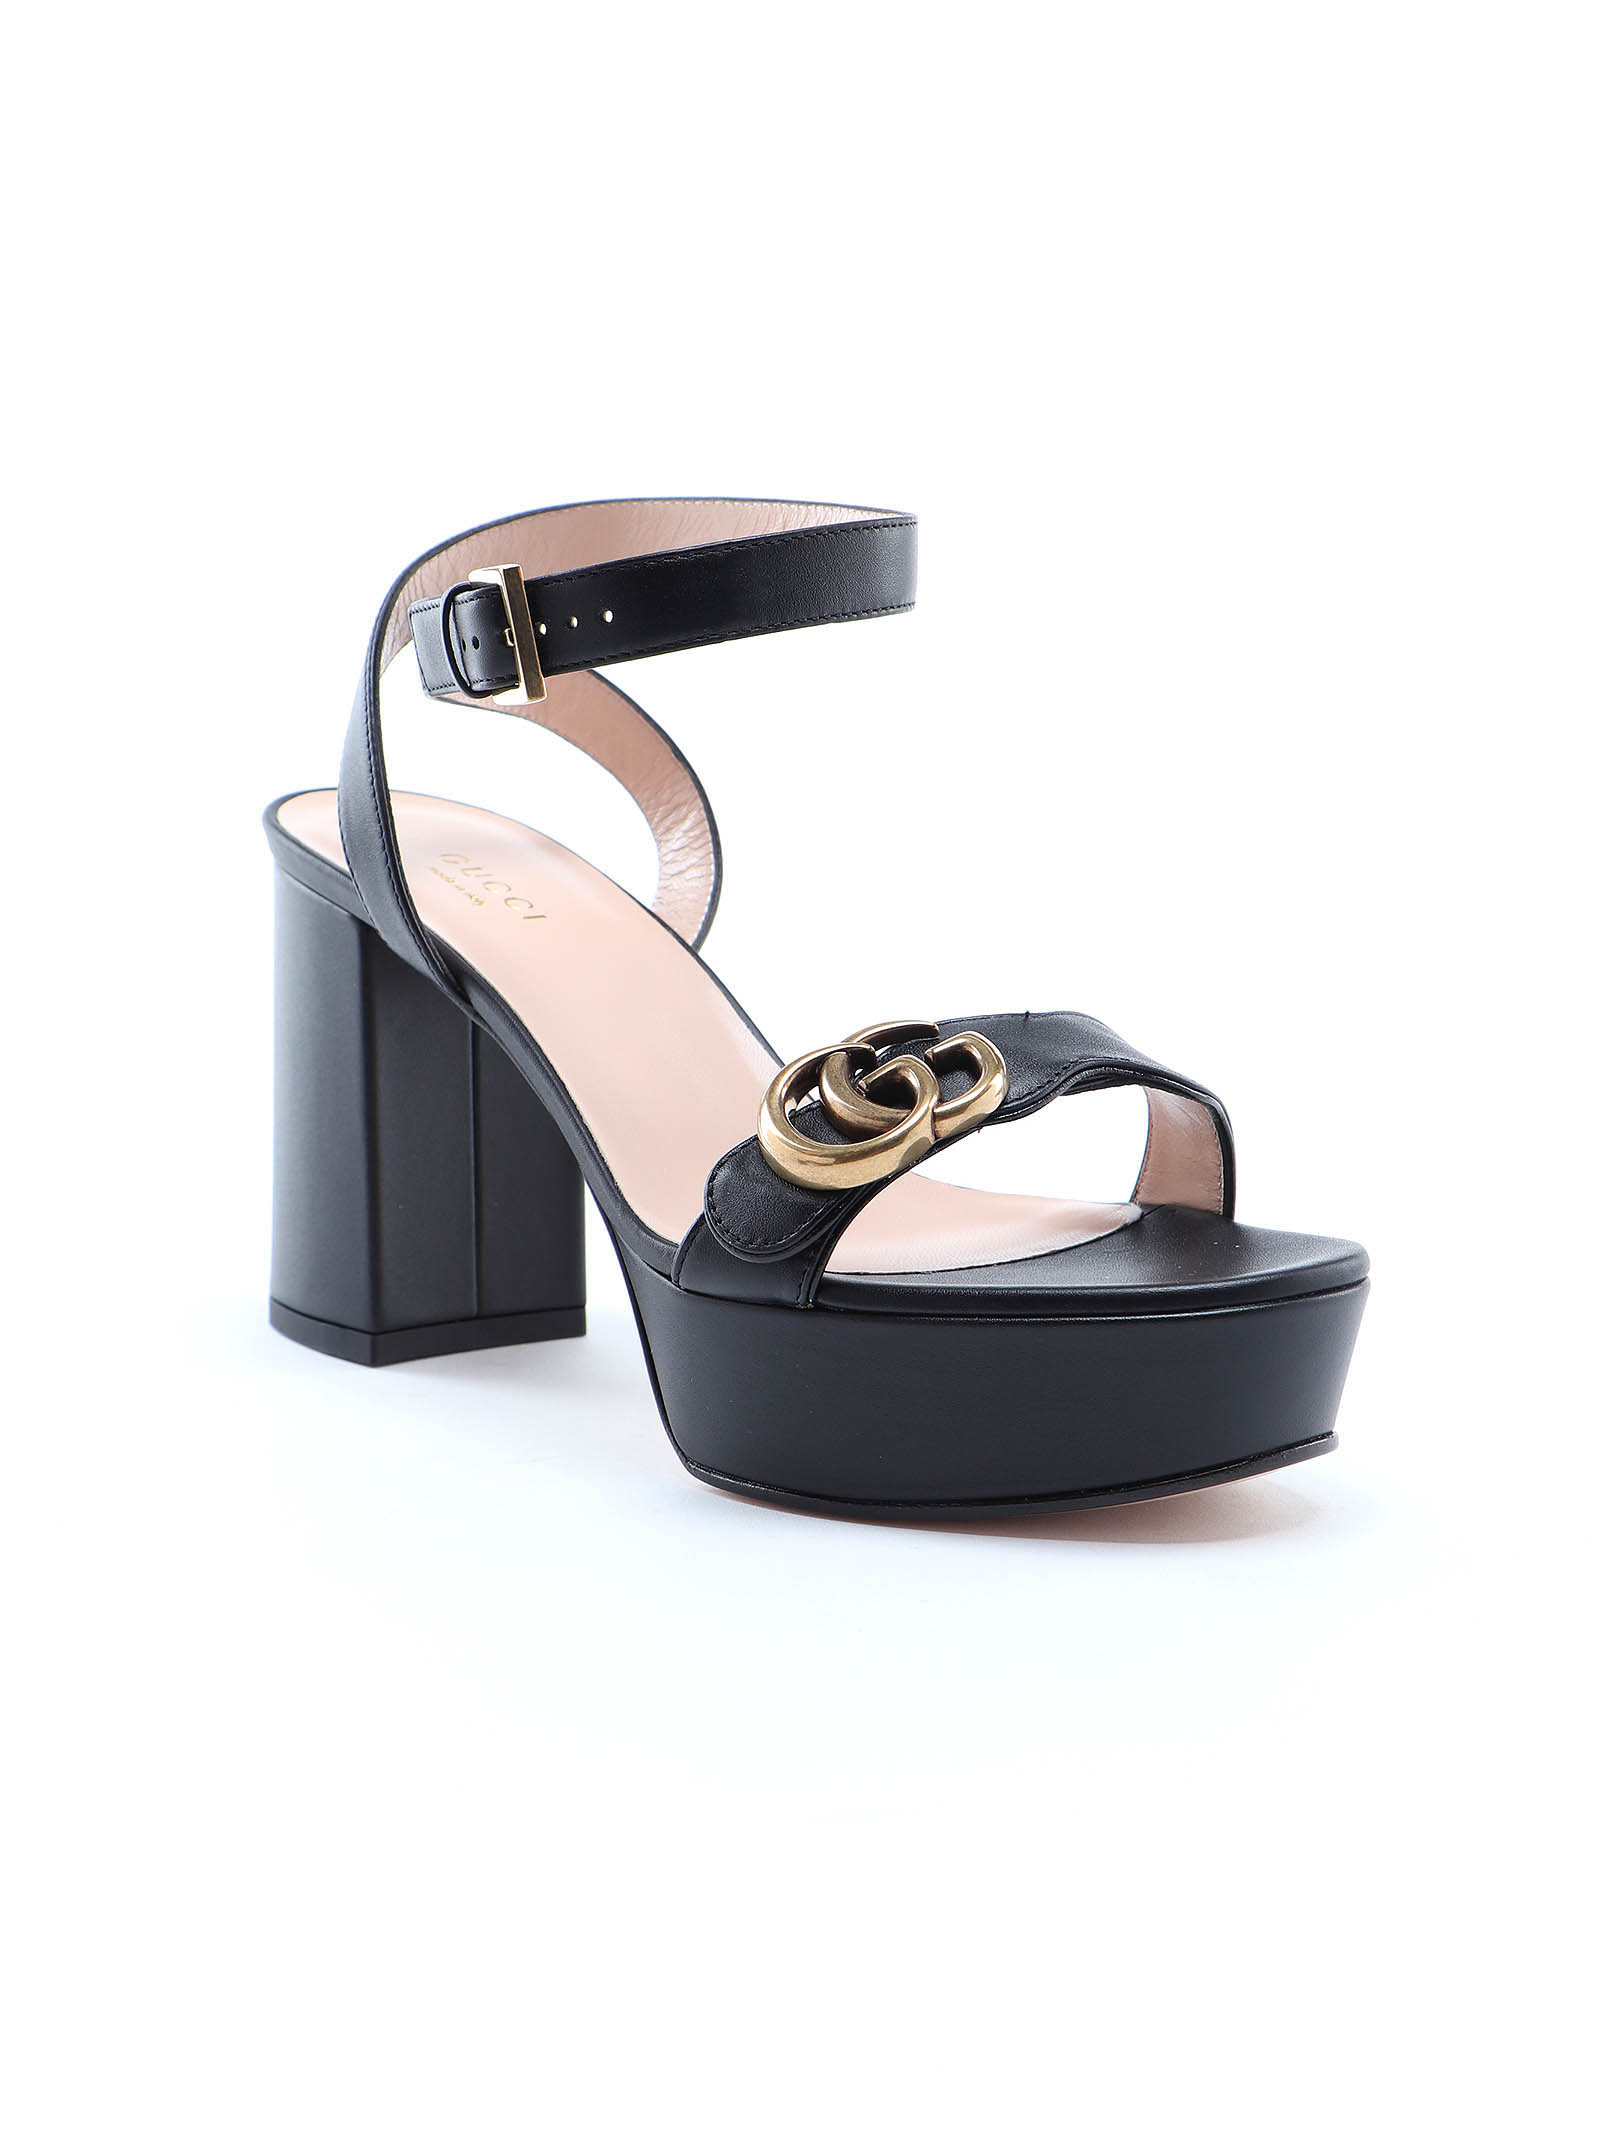 Picture of Gucci | Gg Marmont Sandal